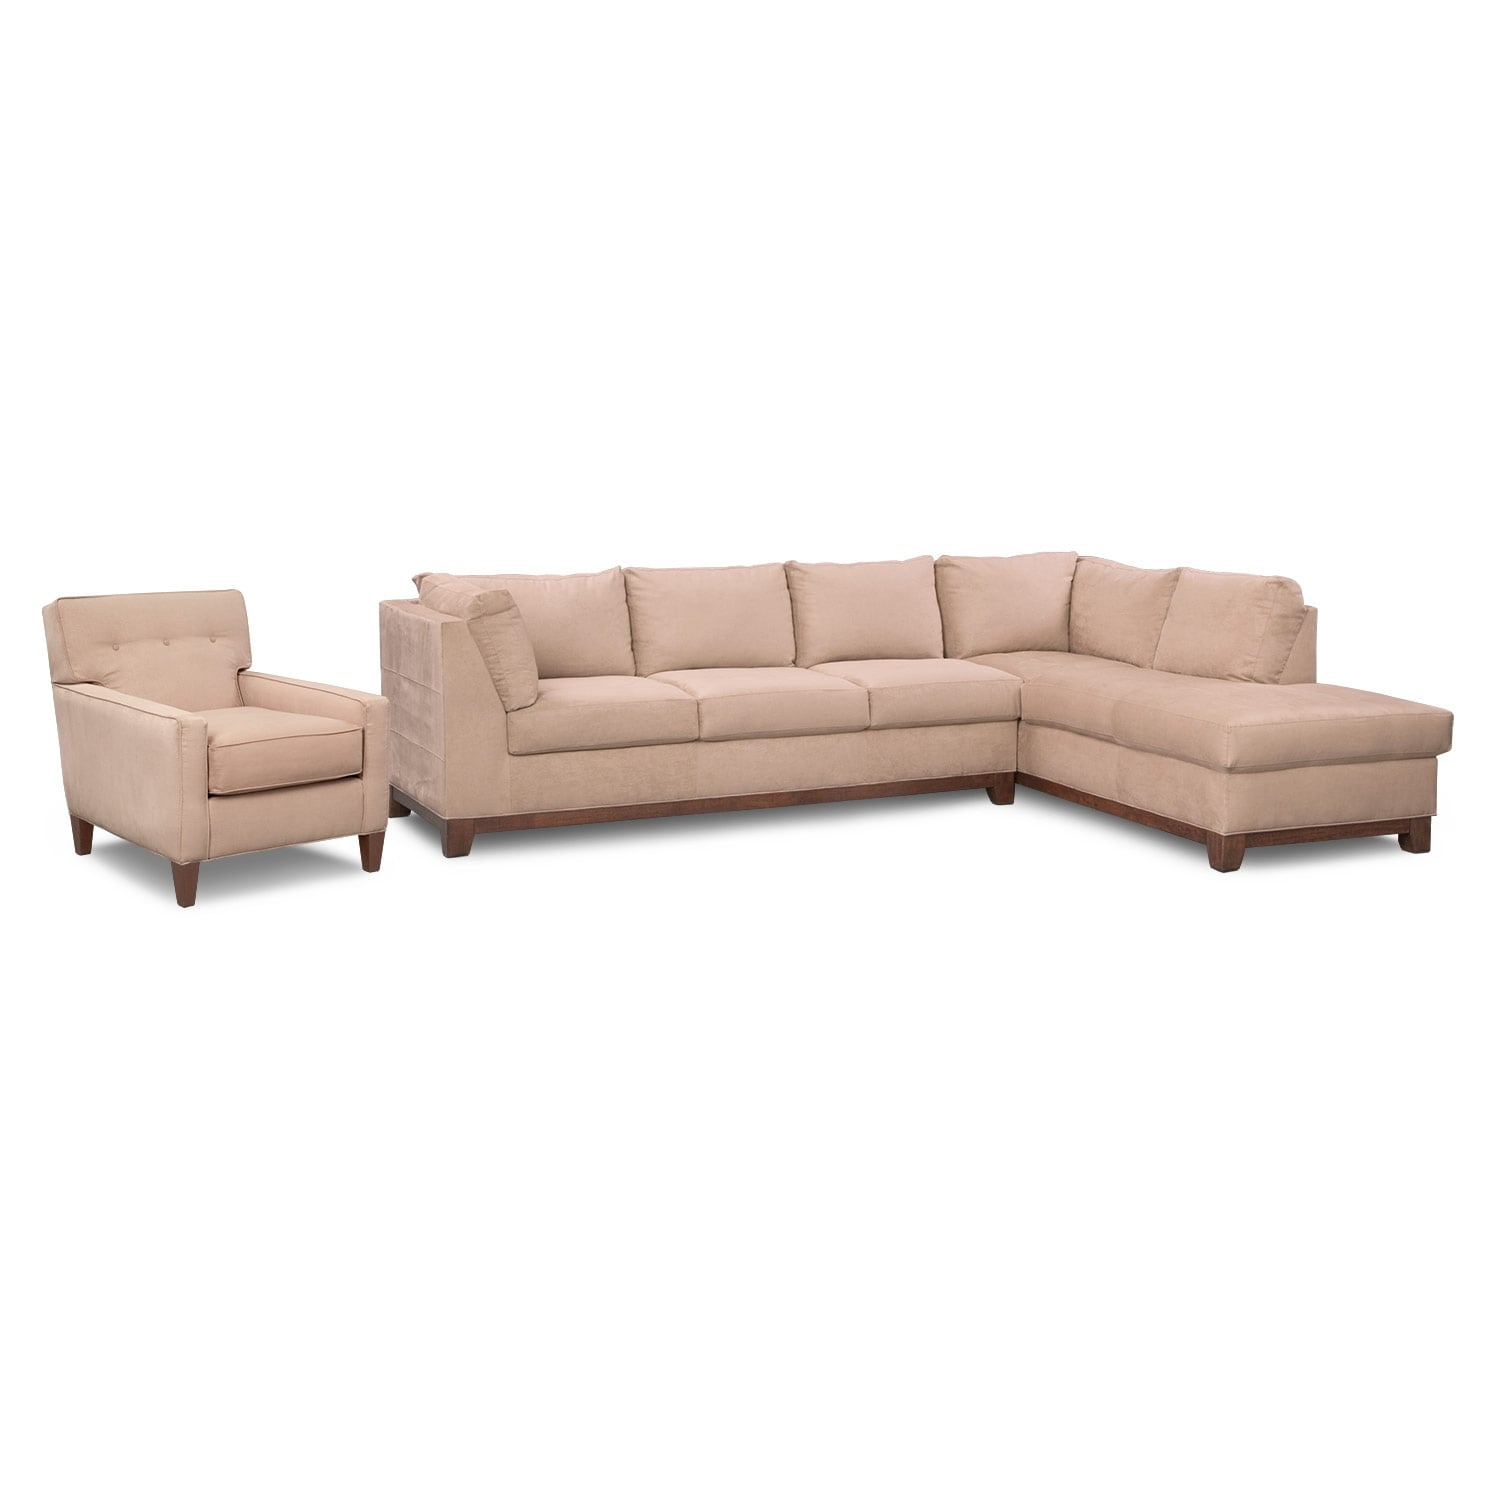 Living Room Furniture - Soho II 2 Pc. Sectional and Accent Chair